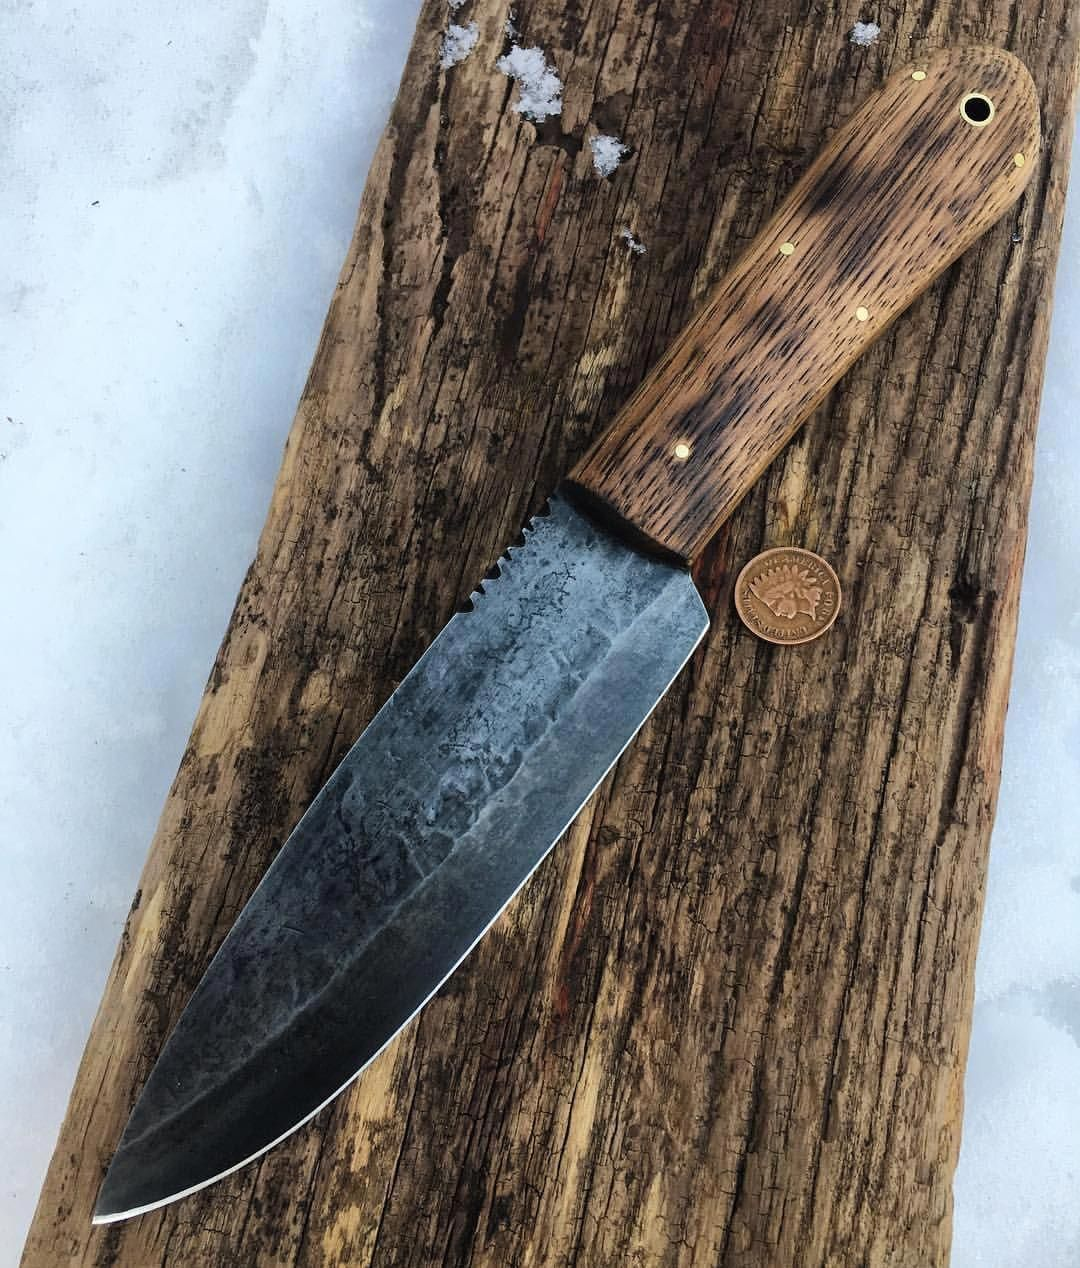 Ml knives the handle shape up to the blade makes me think i could